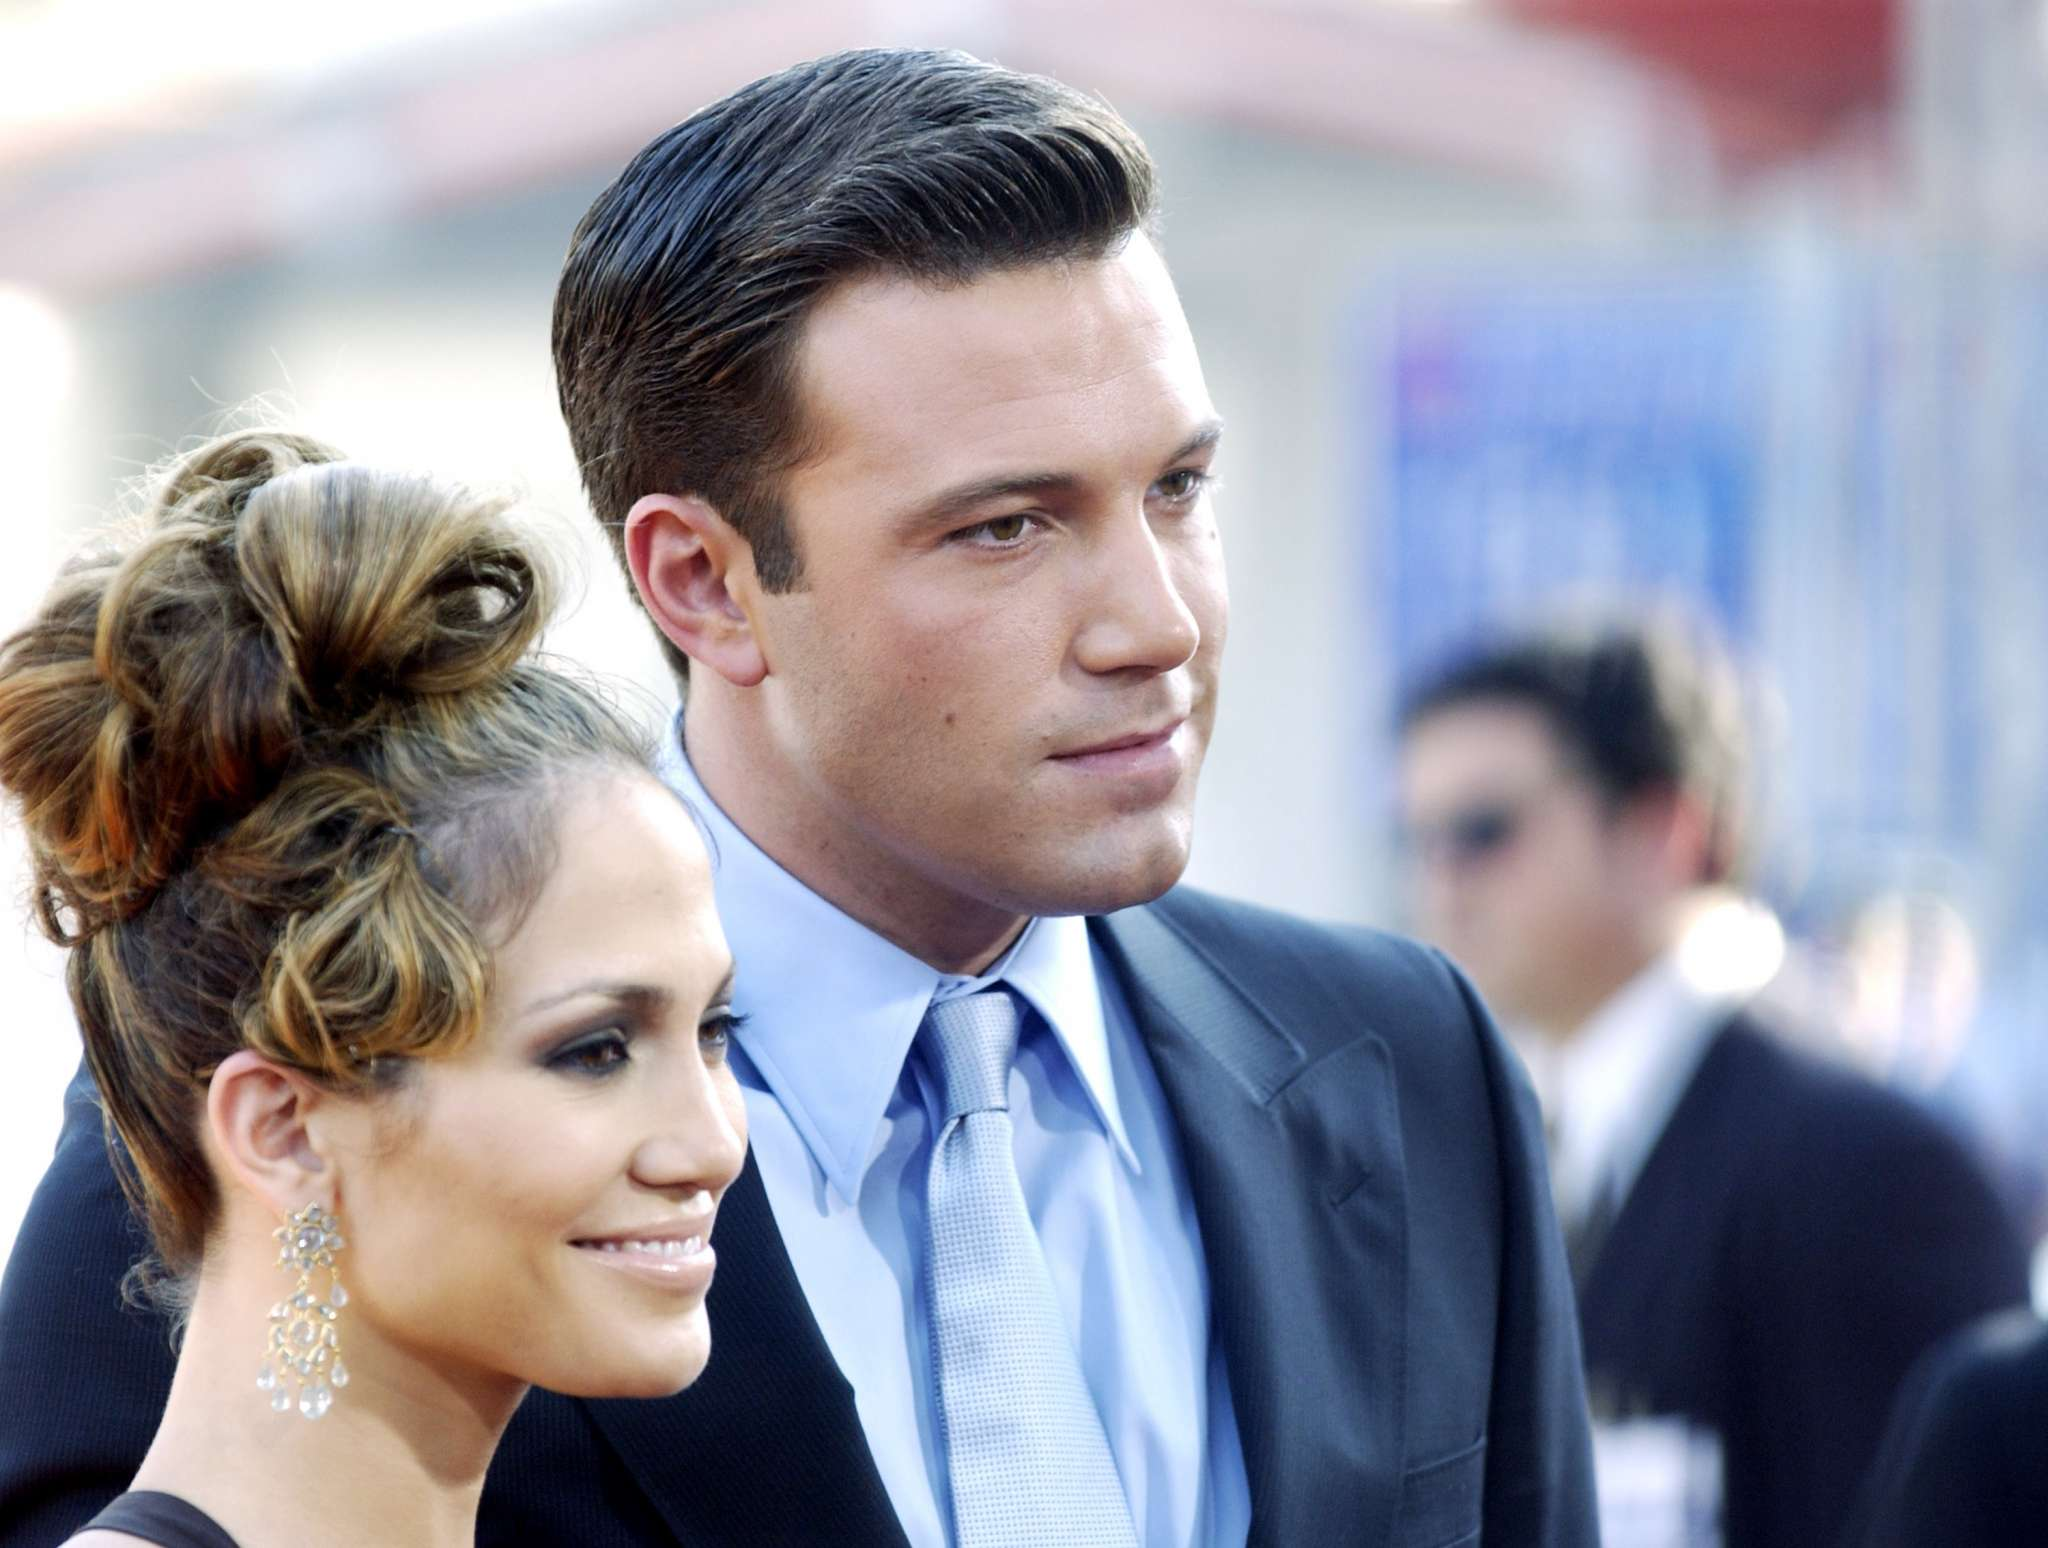 jennifer-lopez-and-ben-affleck-spending-more-and-more-time-together-since-her-alex-rodriguez-split-are-they-reuniting